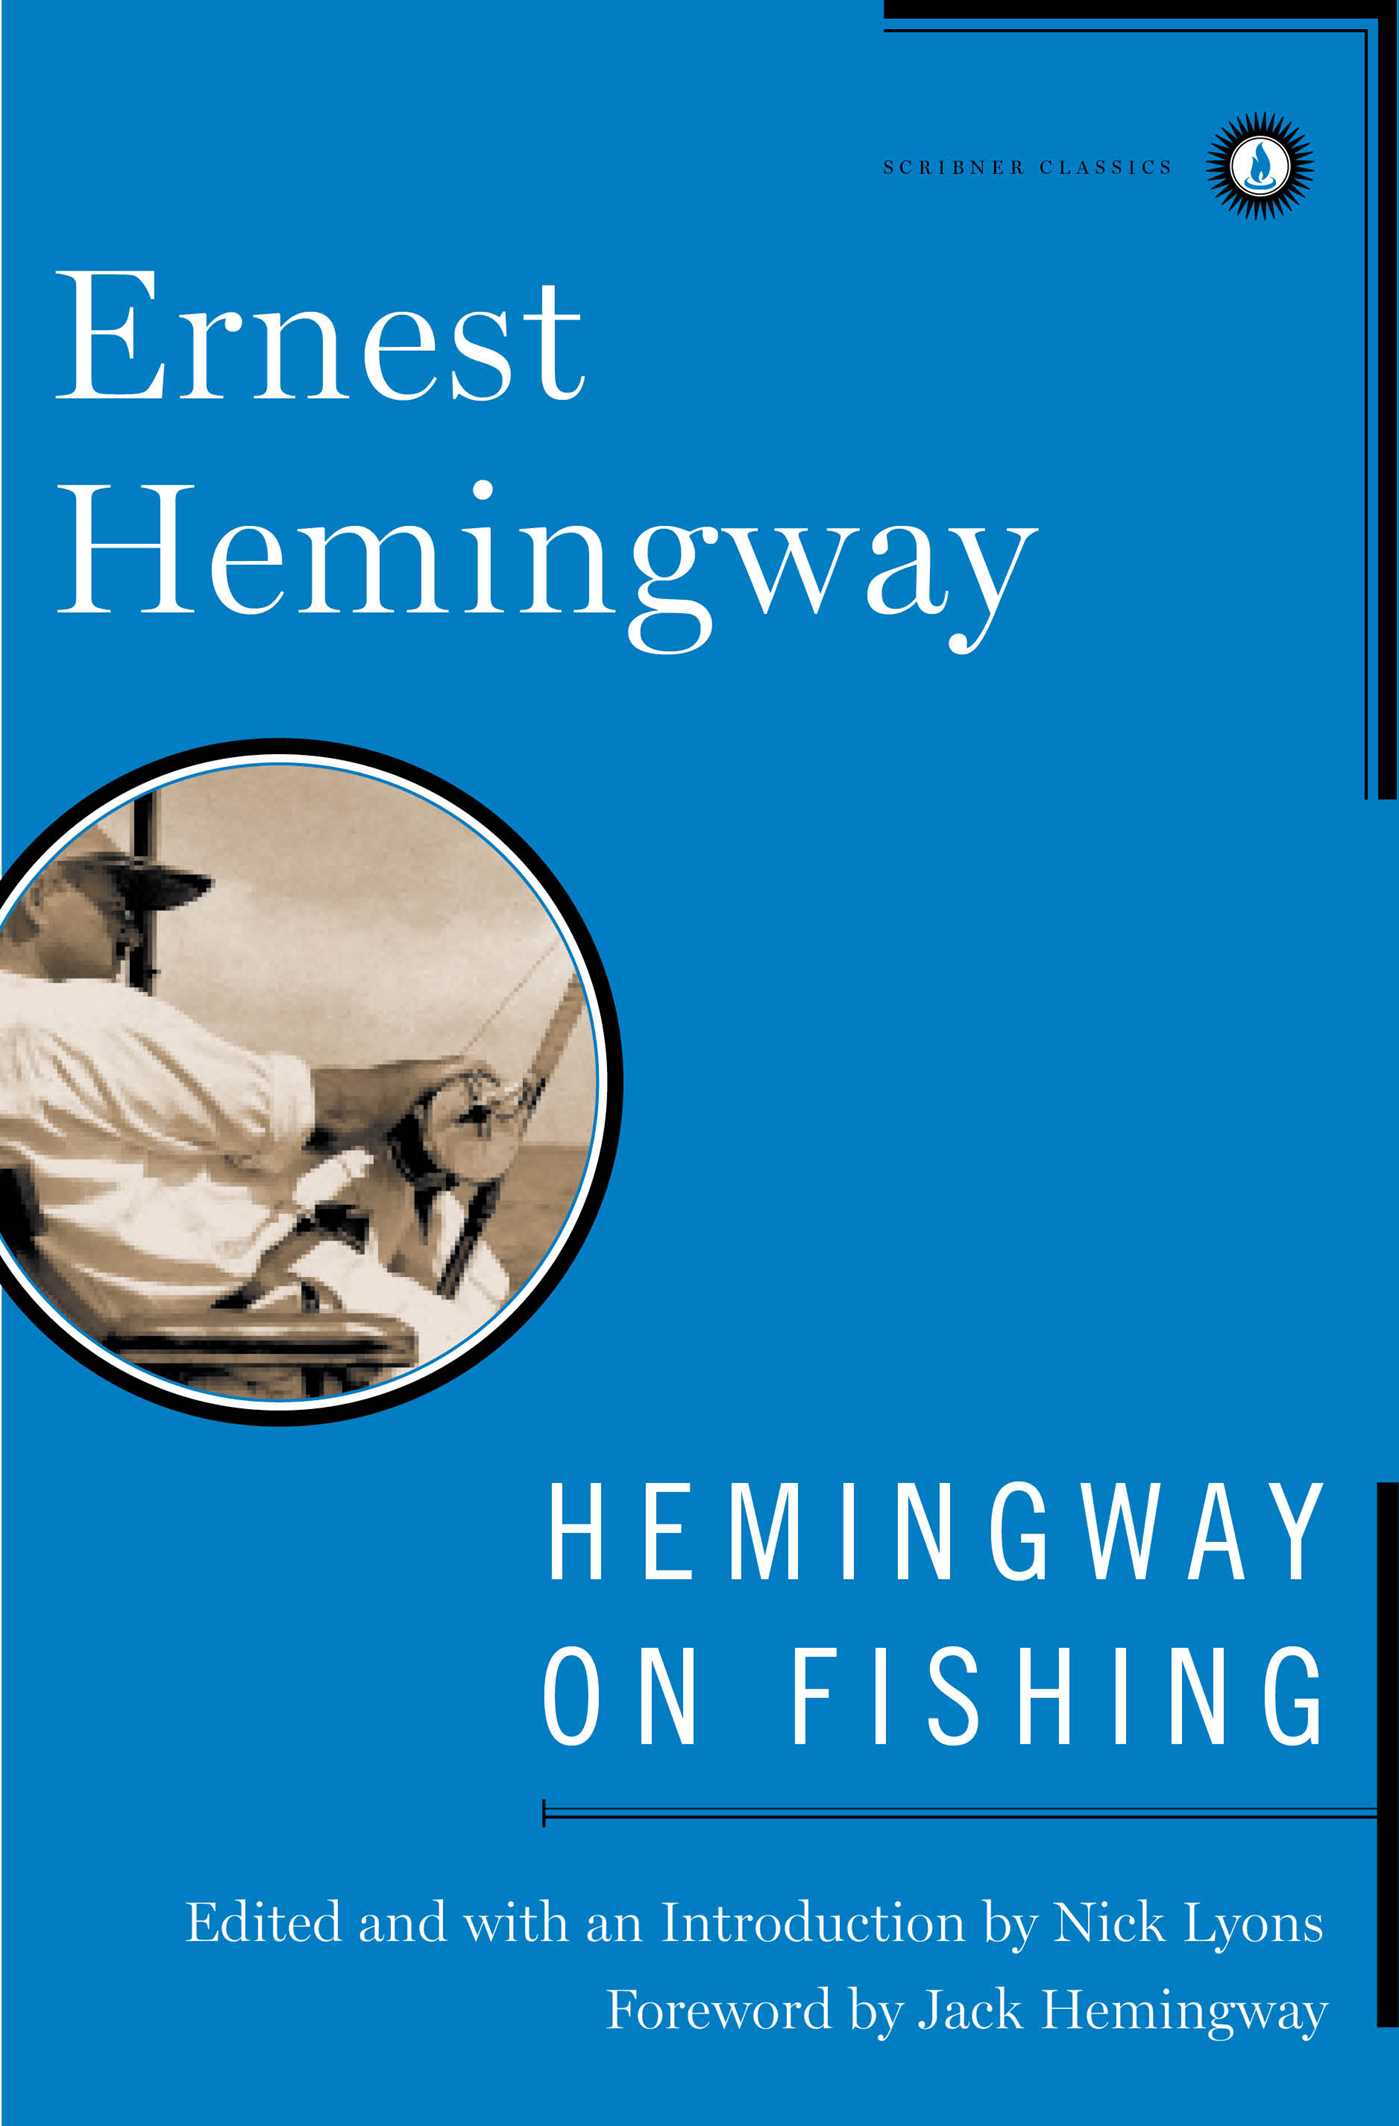 Hemingway-on-fishing-9781476716428_hr